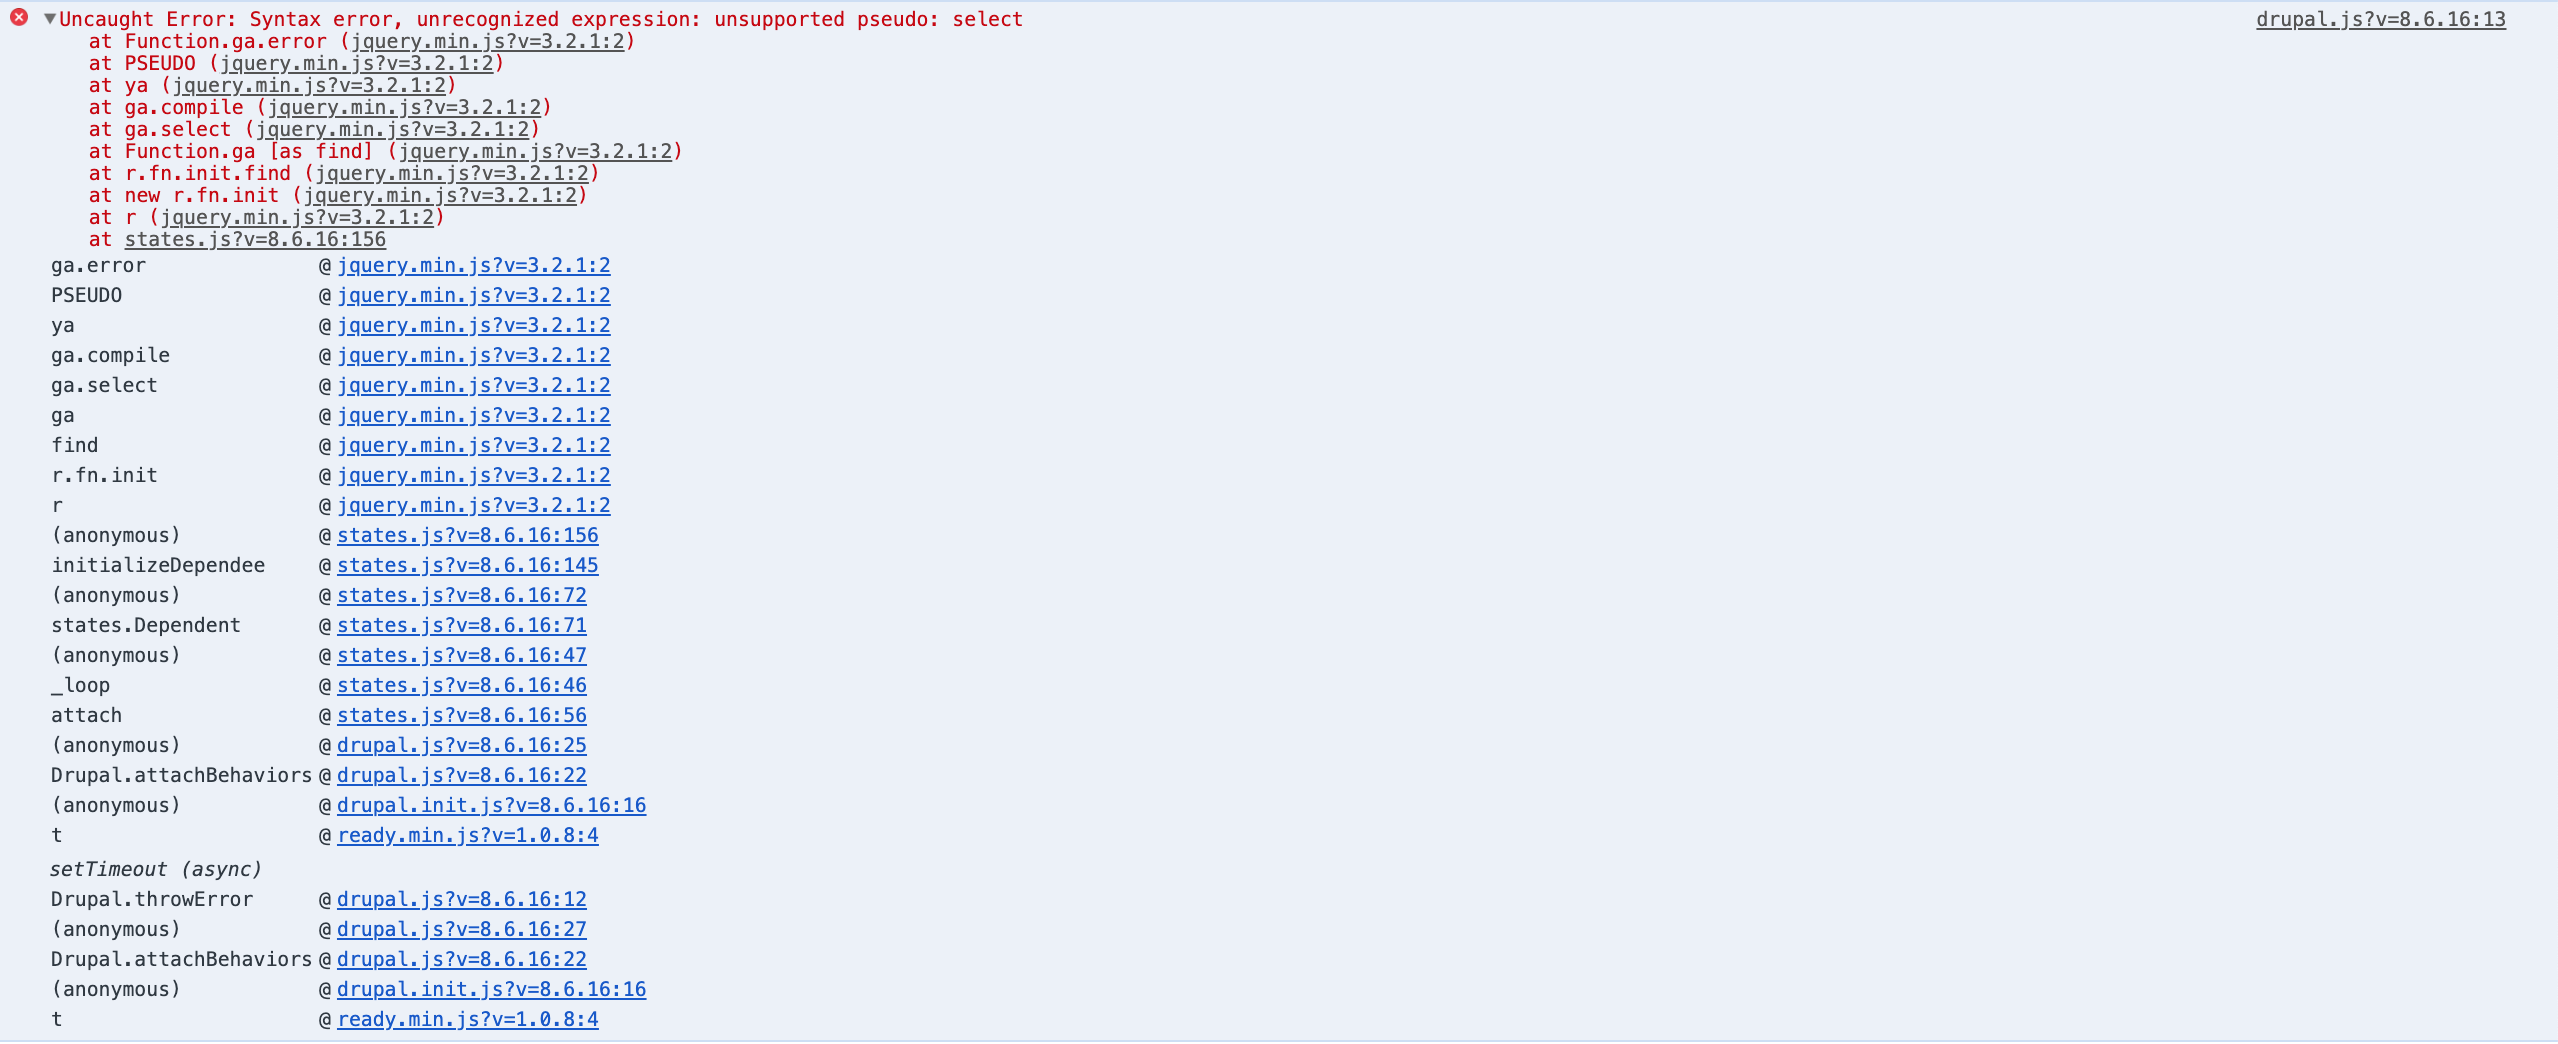 States API doesn't work with multiple select fields [#1149078